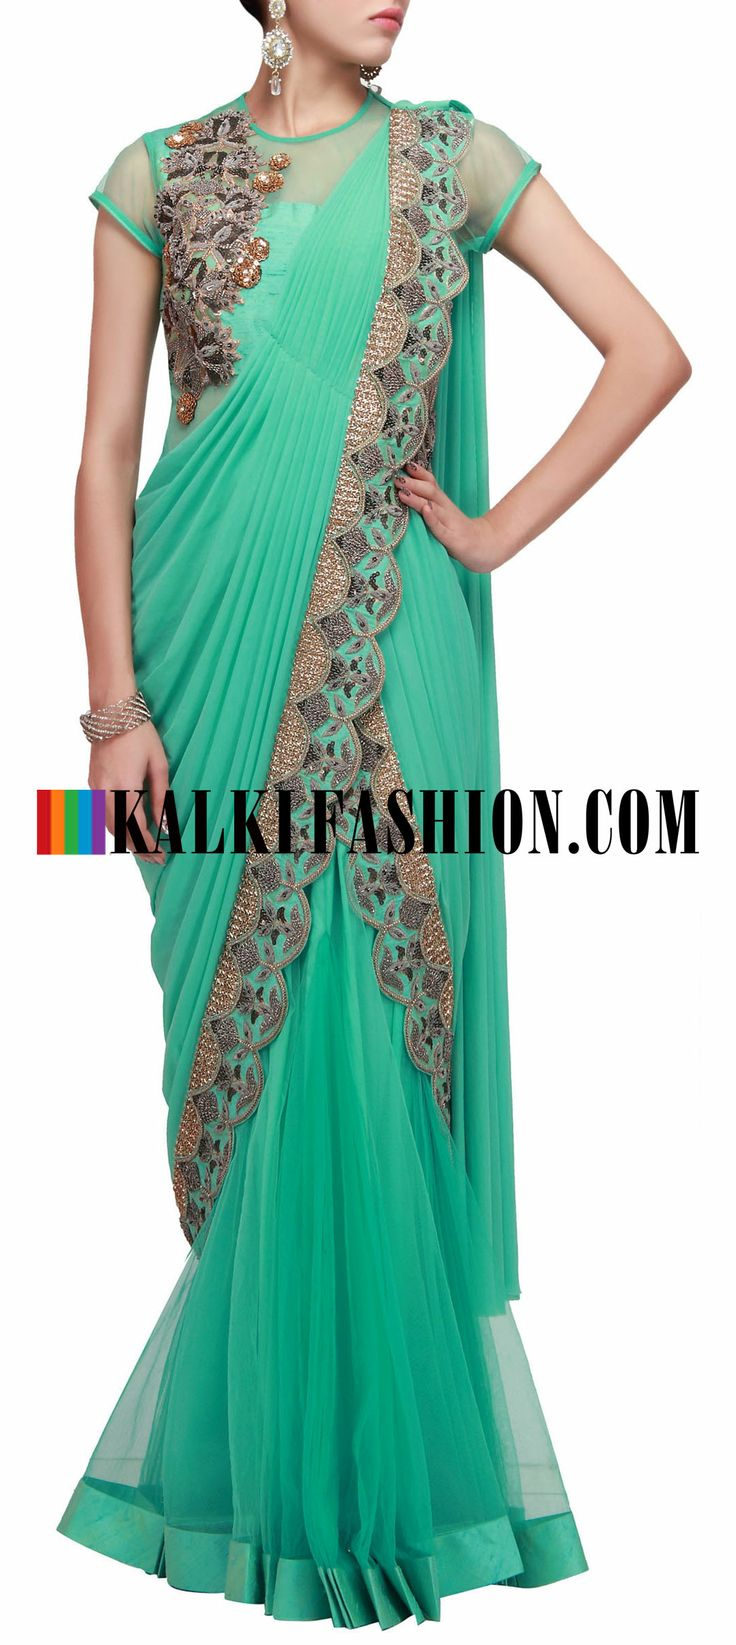 Buy Online from the link below. We ship worldwide (Free Shipping over US$100) http://www.kalkifashion.com/featuring-pre-stitched-saree-gown-in-turq-embellished-in-zardosi-only-on-kalki.html Featuring pre stitched saree gown in turq embellished in zardosi only on Kalki